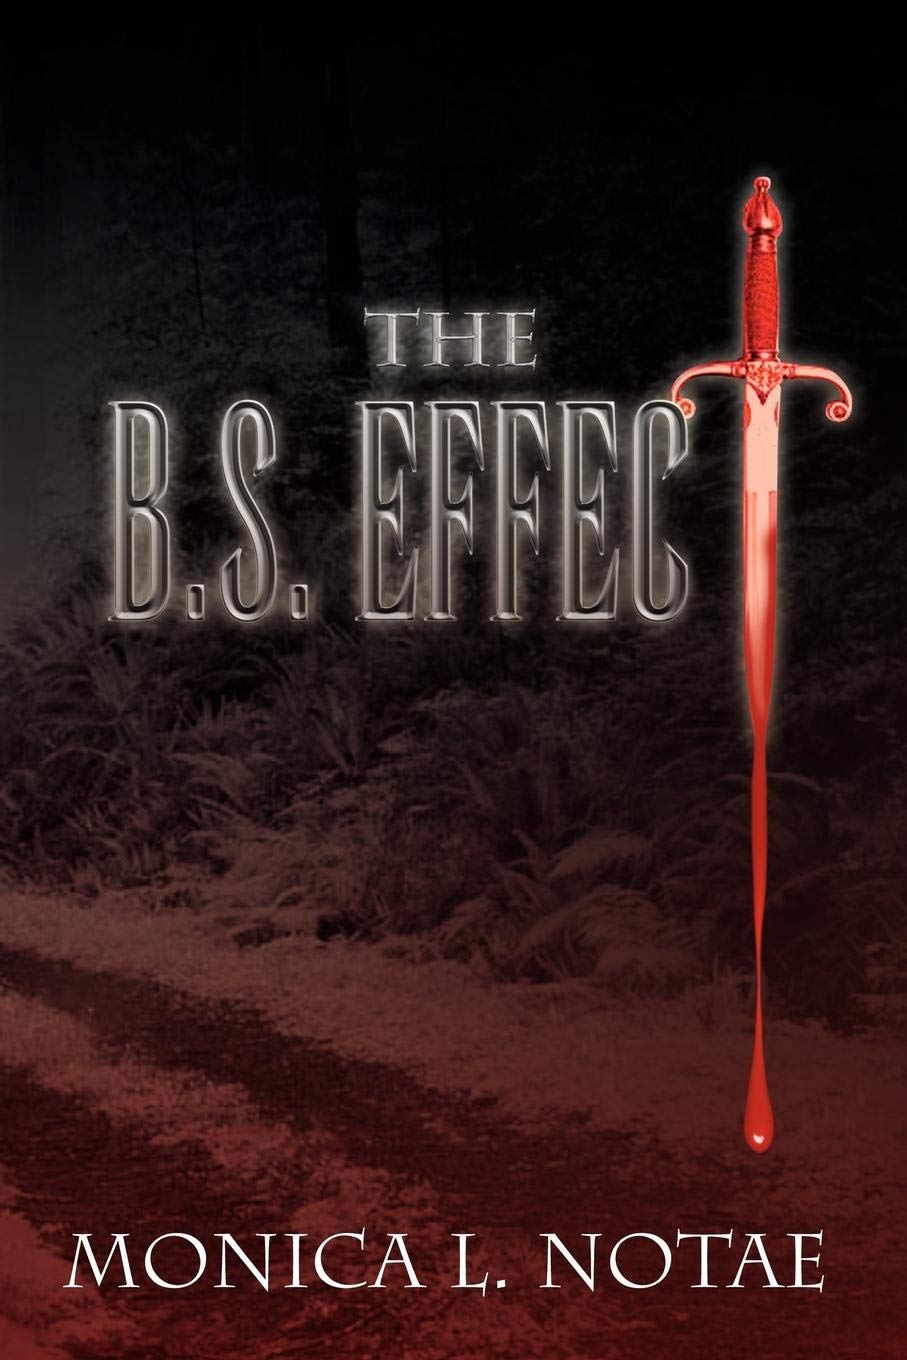 The B.S. EFFECT